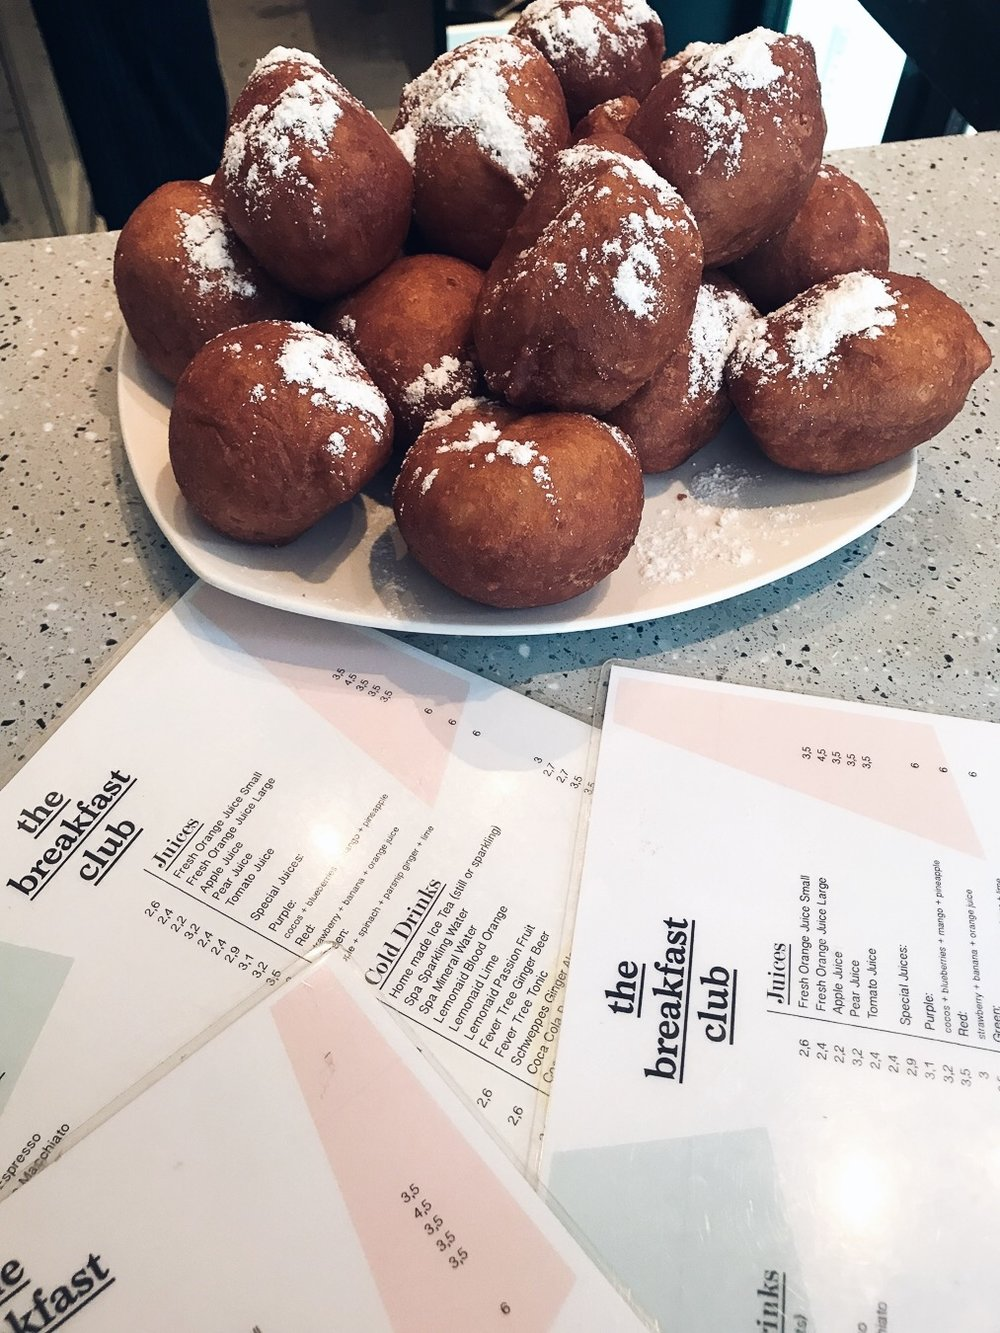 The Breakfastclub  Amsterdam. Eating Olibollen (oily balls) at midnight on NYE is a dutch tradition.